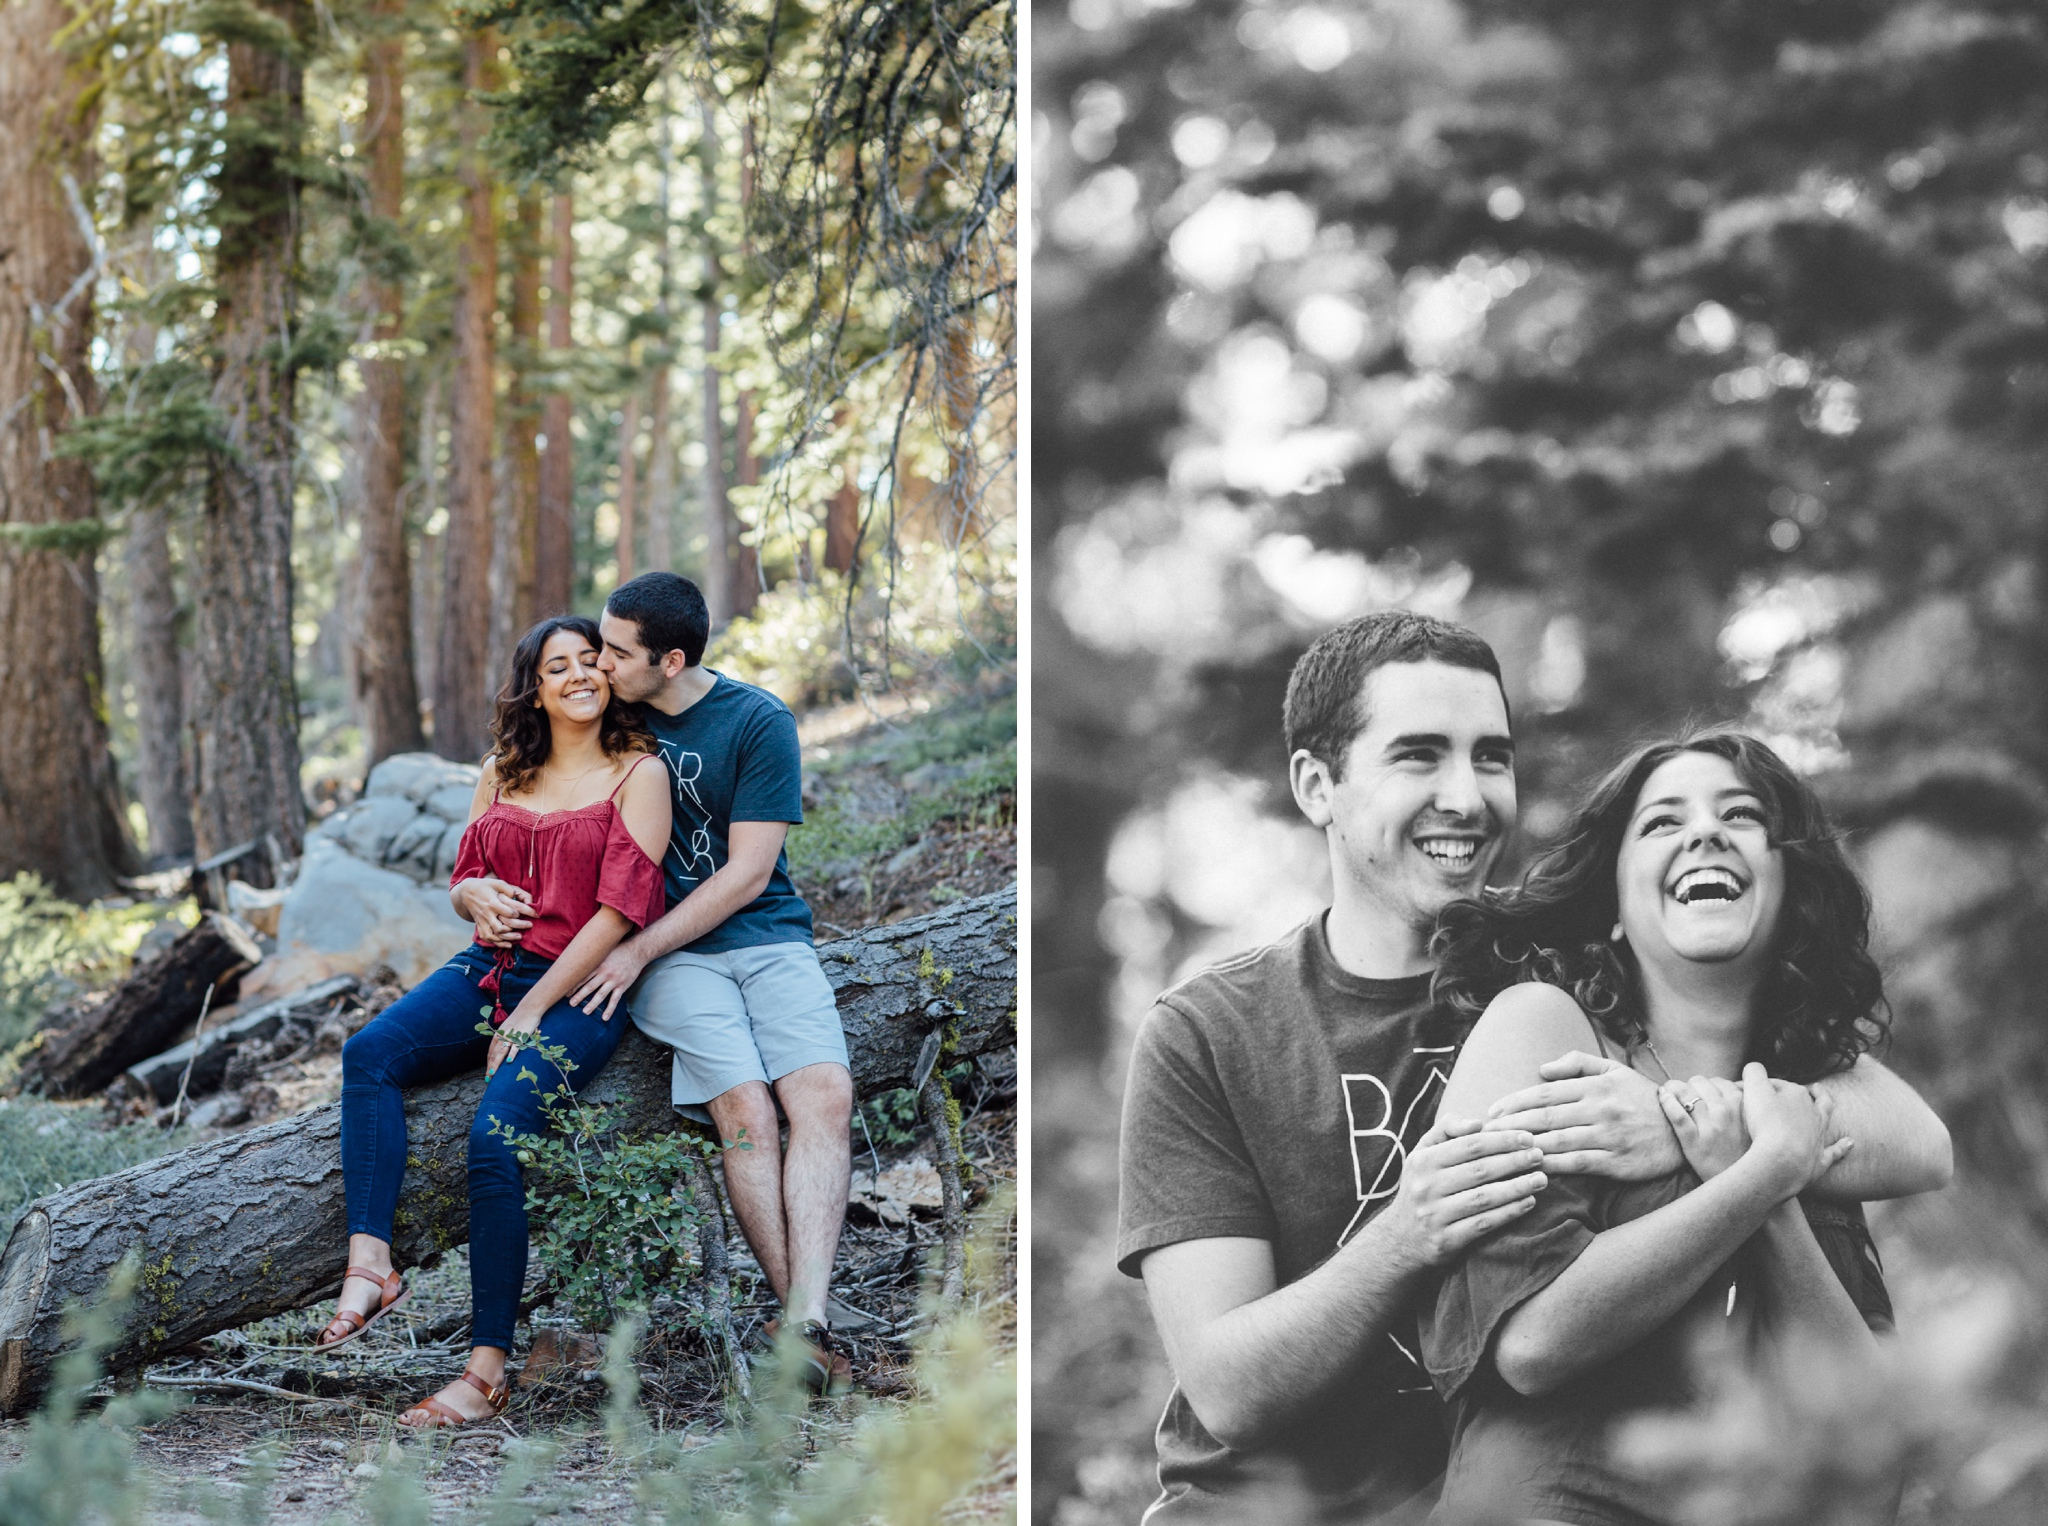 thedelauras_ostaraphotography_laketahoeengagement_laketahoeweddingphotograph_laketahoe_photographer_002